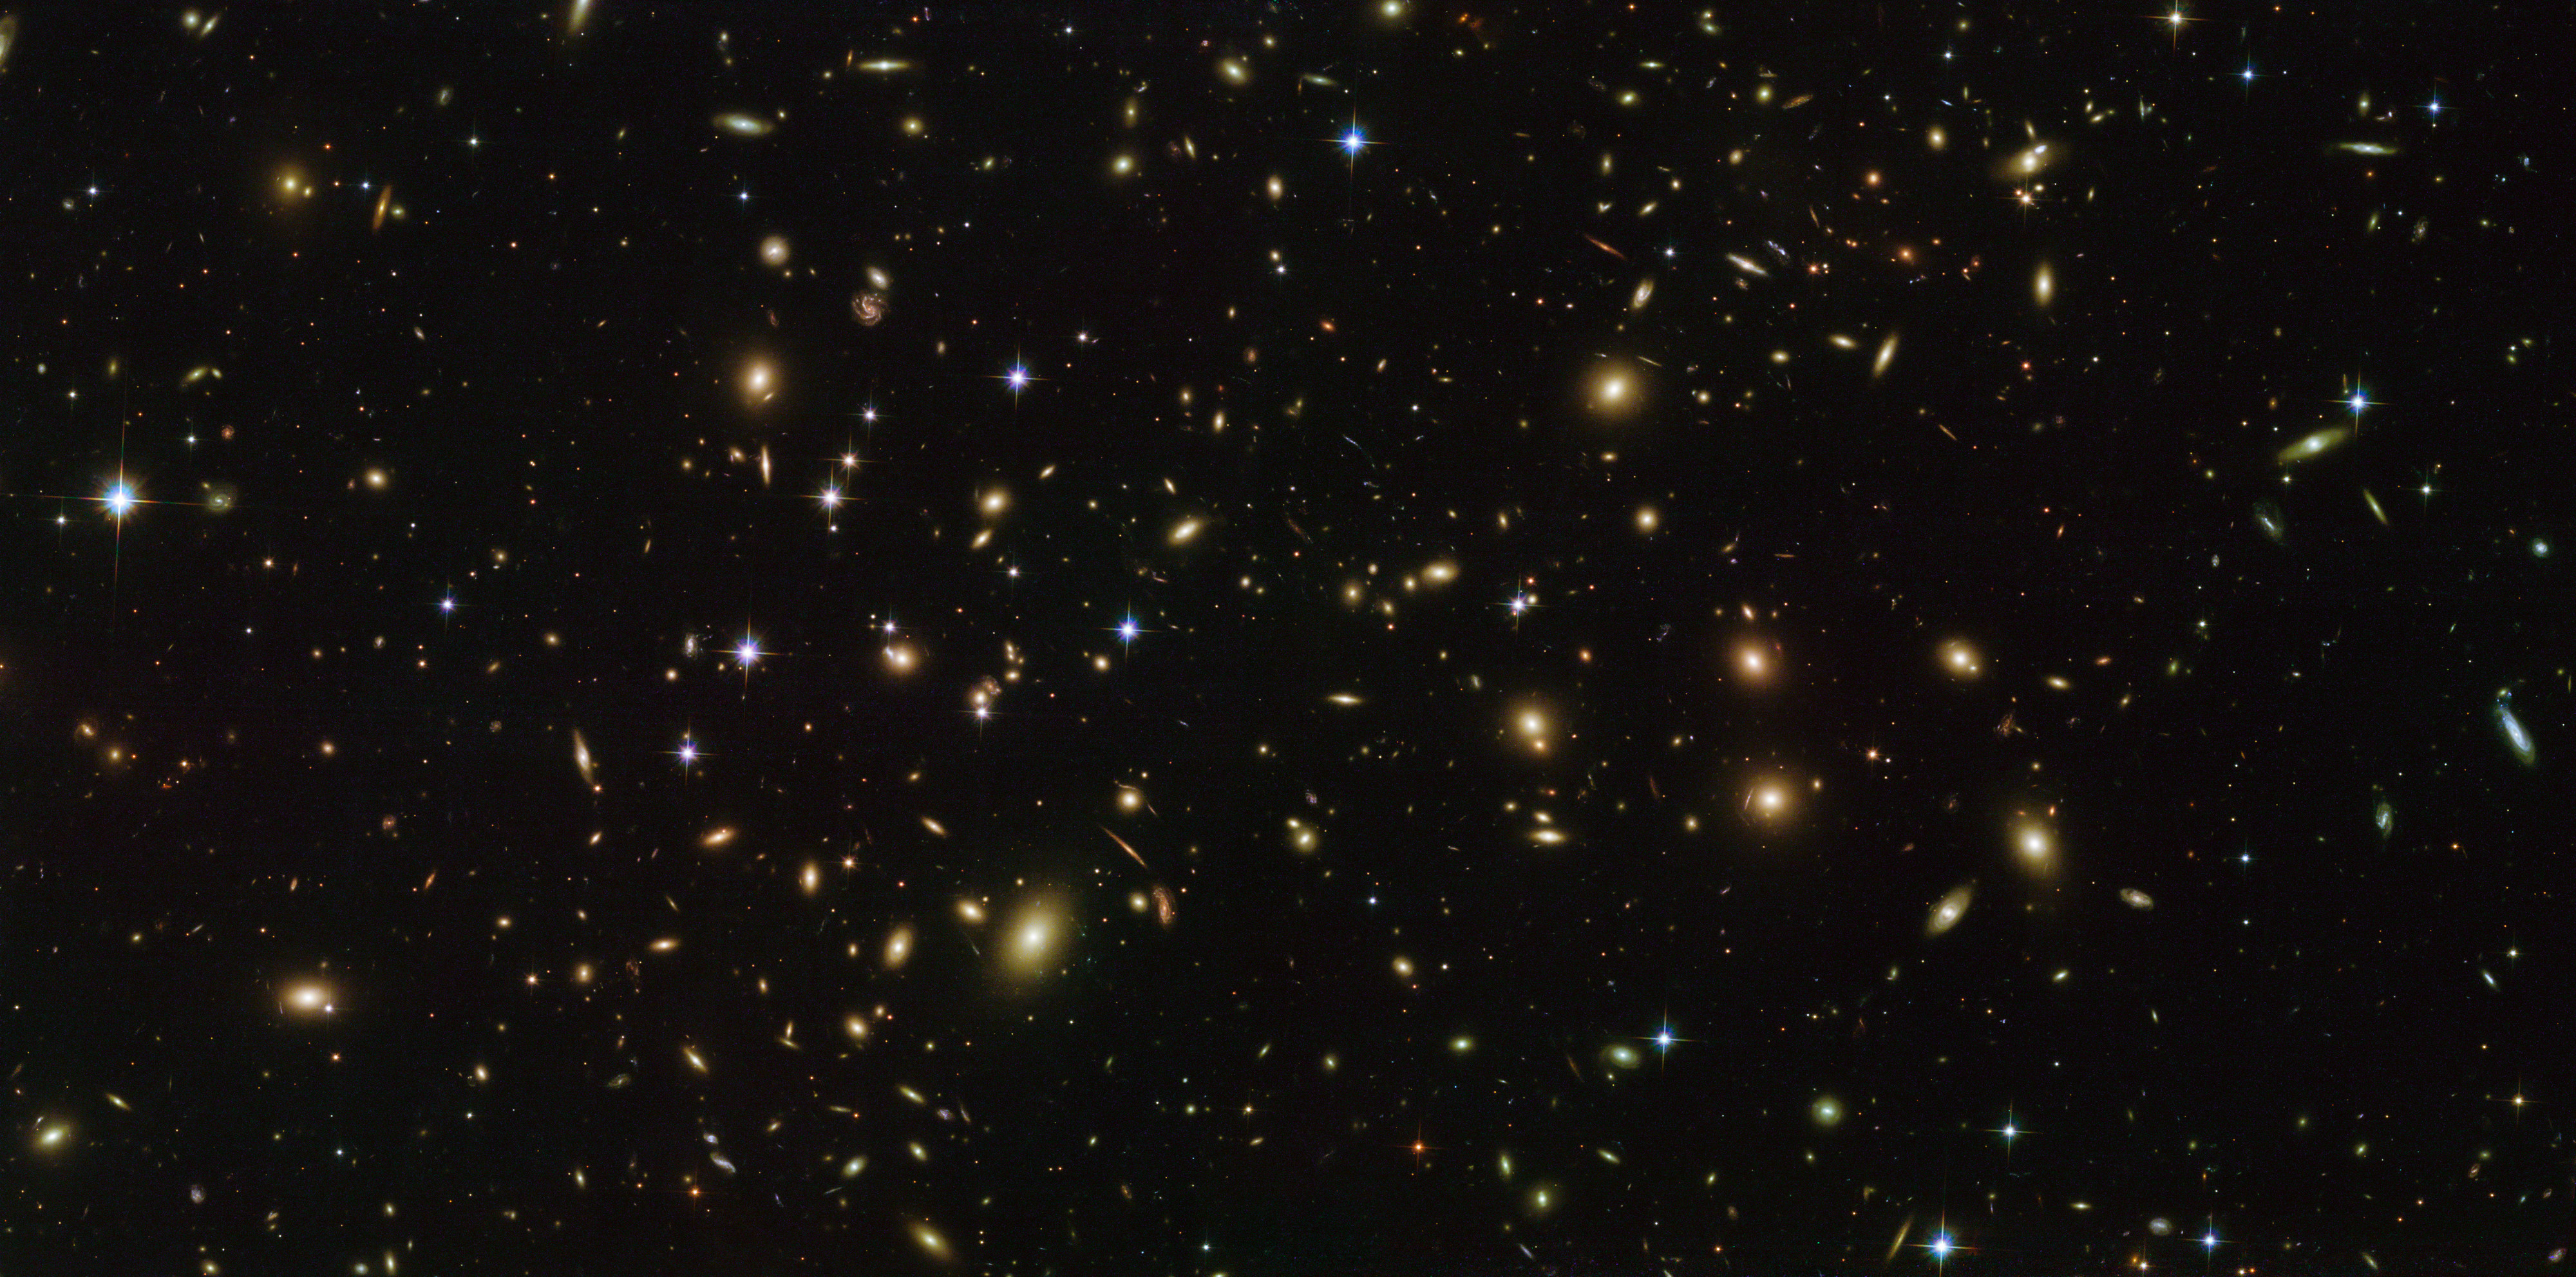 hubble ultra deep field 2017 - photo #9